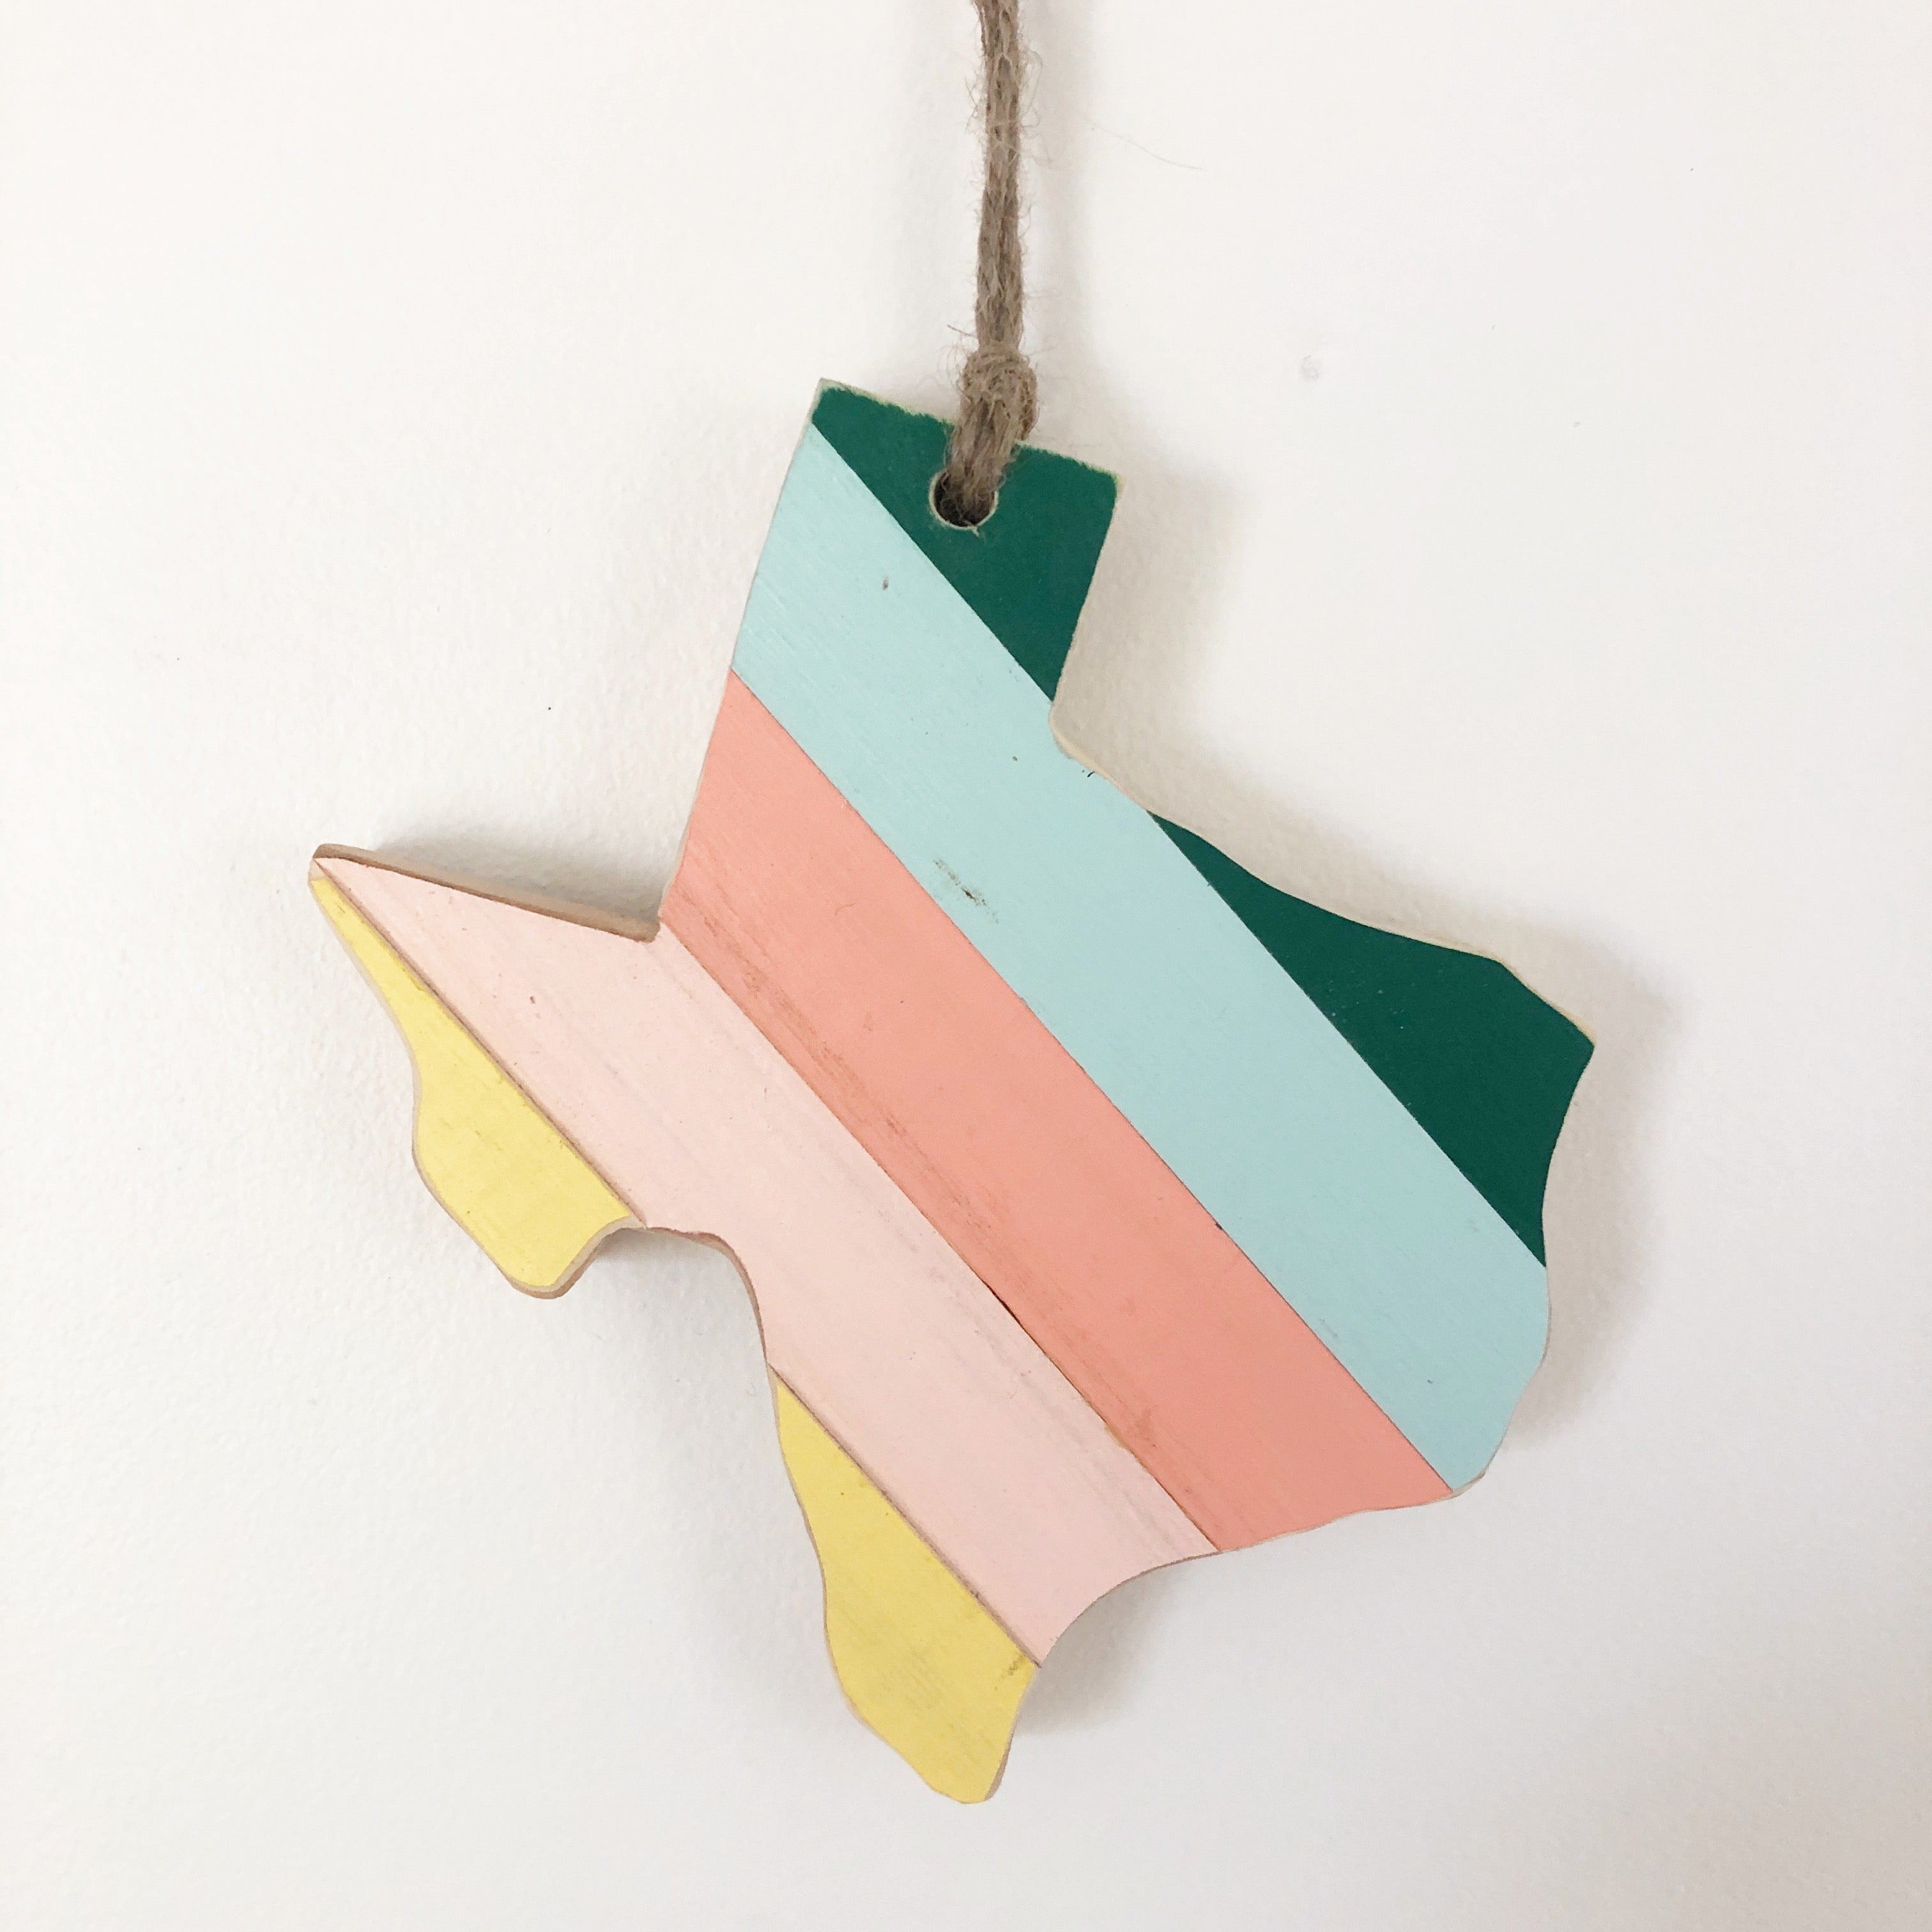 '81 TEXAS ORNAMENT - 6""